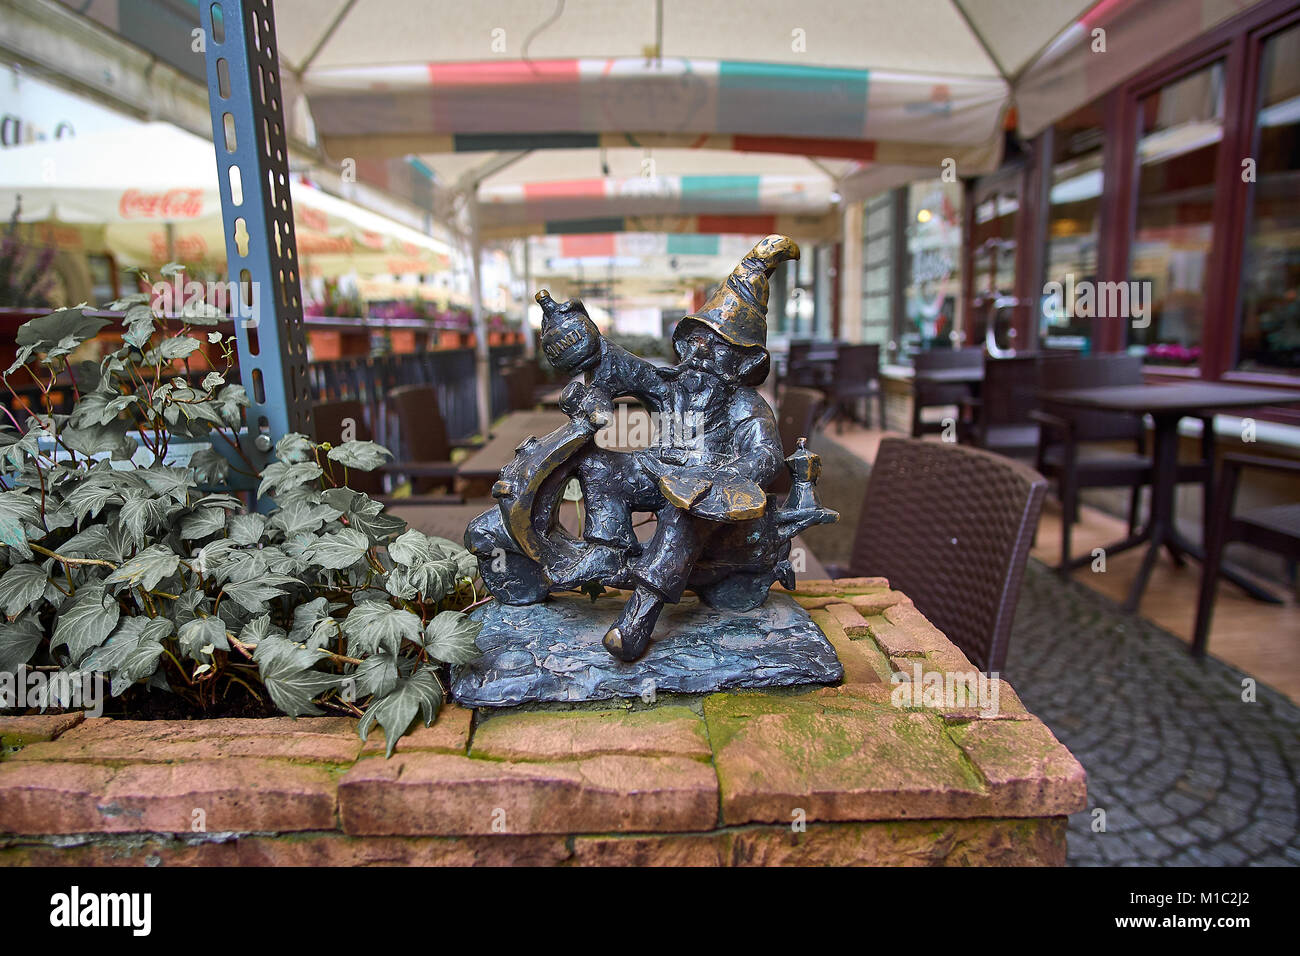 Tourist attraction statues of Wroclaw's dwarfs. Old gnome drinking ale. Stock Photo